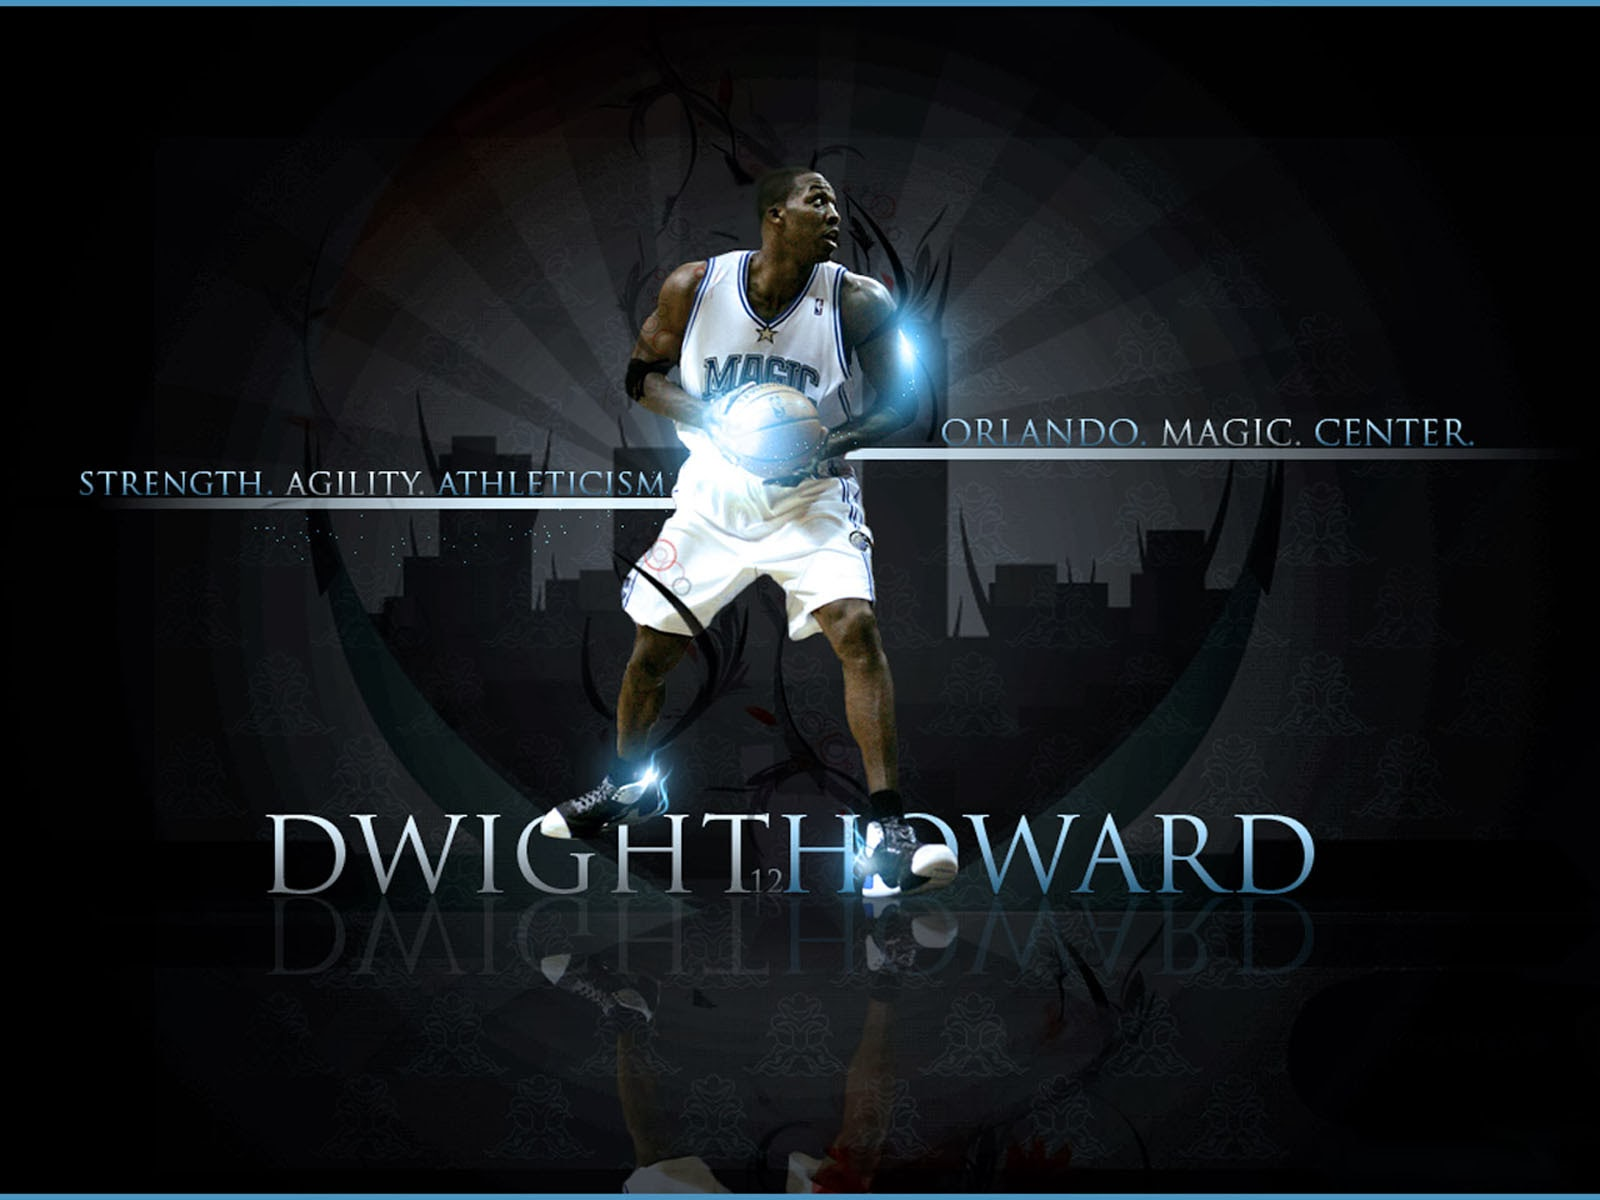 A Cute Couple Wallpaper Wallpapers Dwight Howard Wallpapers